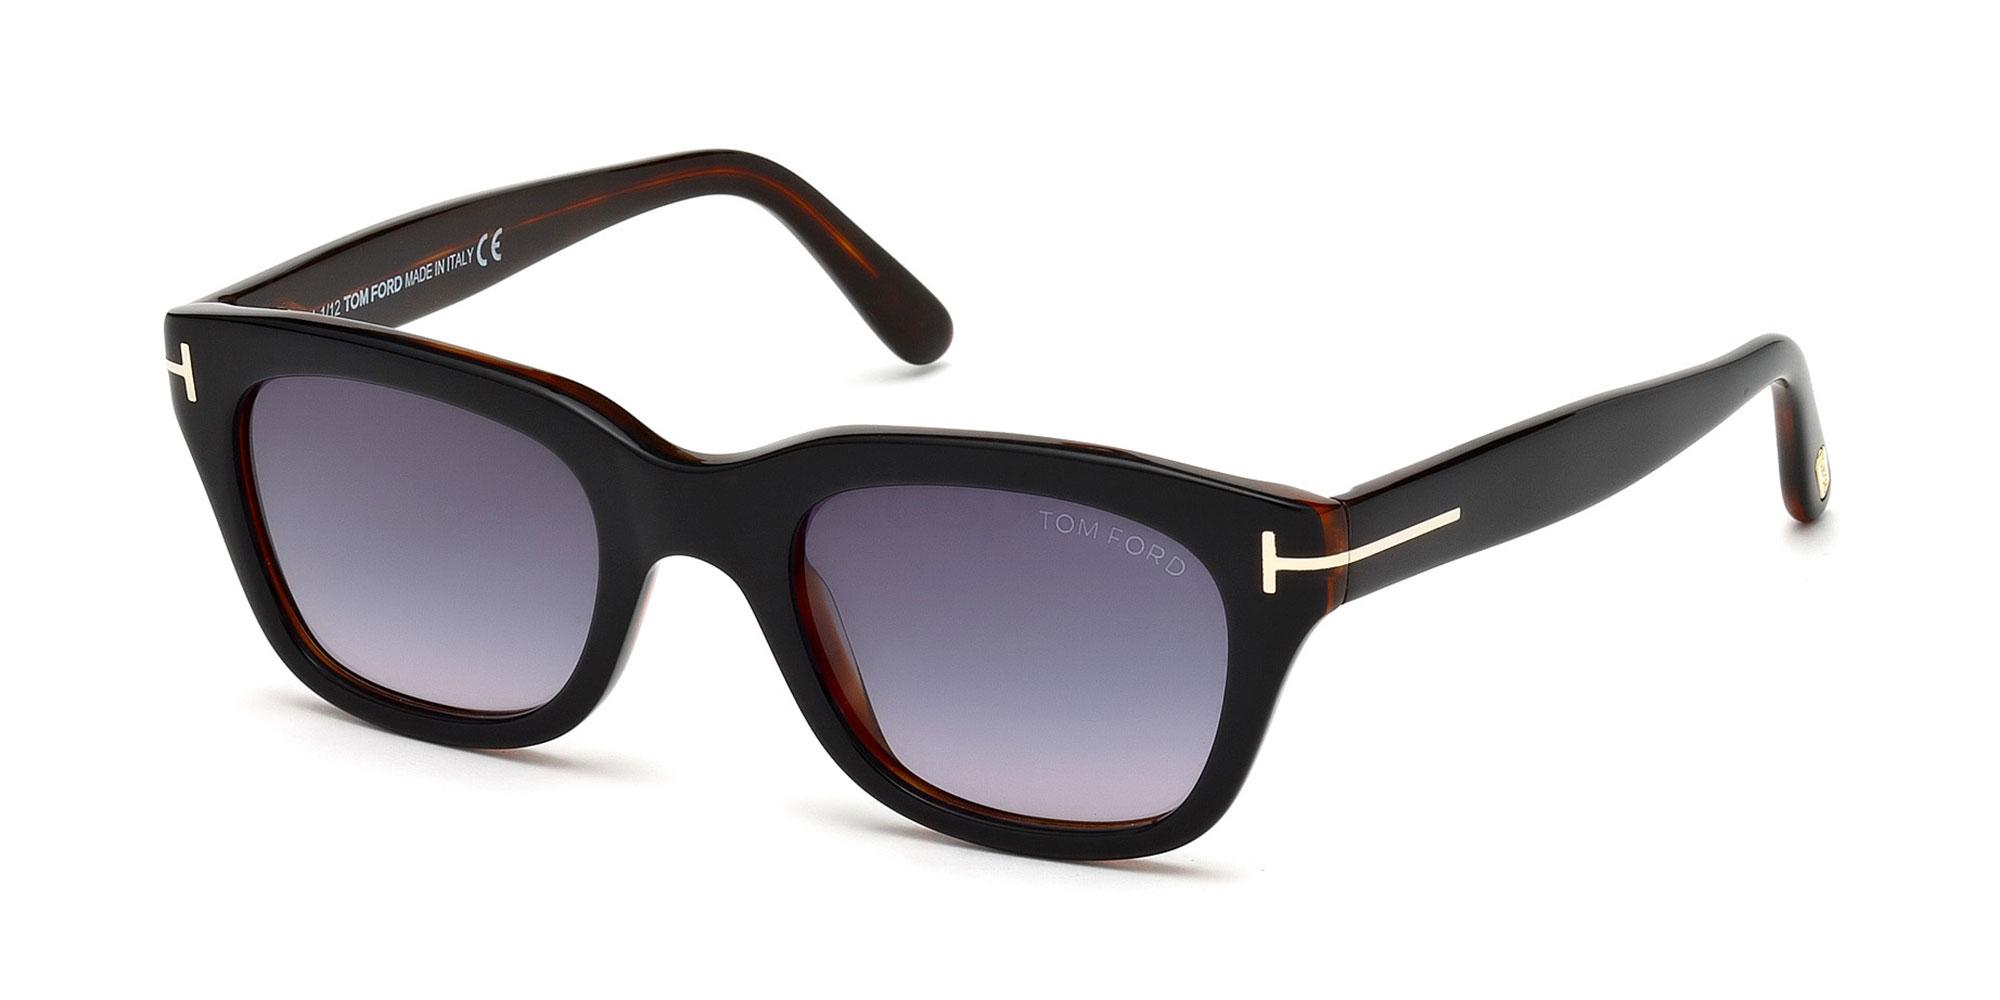 Tom-Ford-Snowdon-Sunglasses-featured-in-James-Bond-Spectre